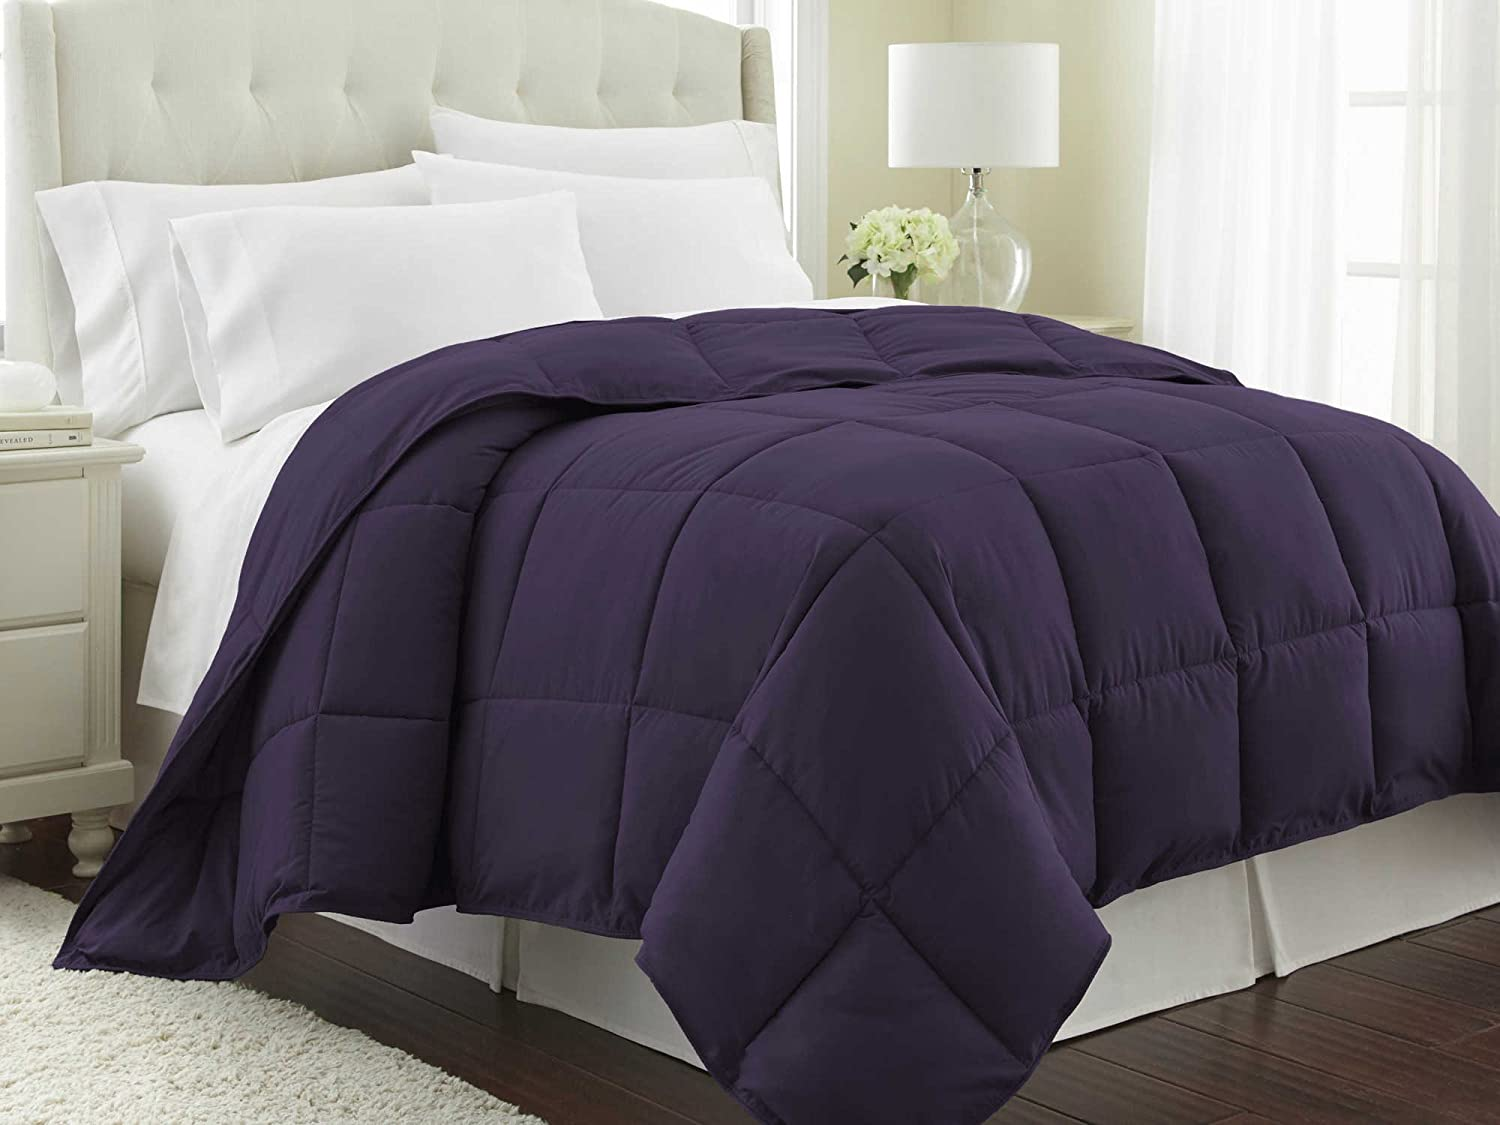 Southshore Fine Linens - Vilano Springs - Down Alternate Weight Comforter - Eggplant Purple - KING / CALIFORNIA KING